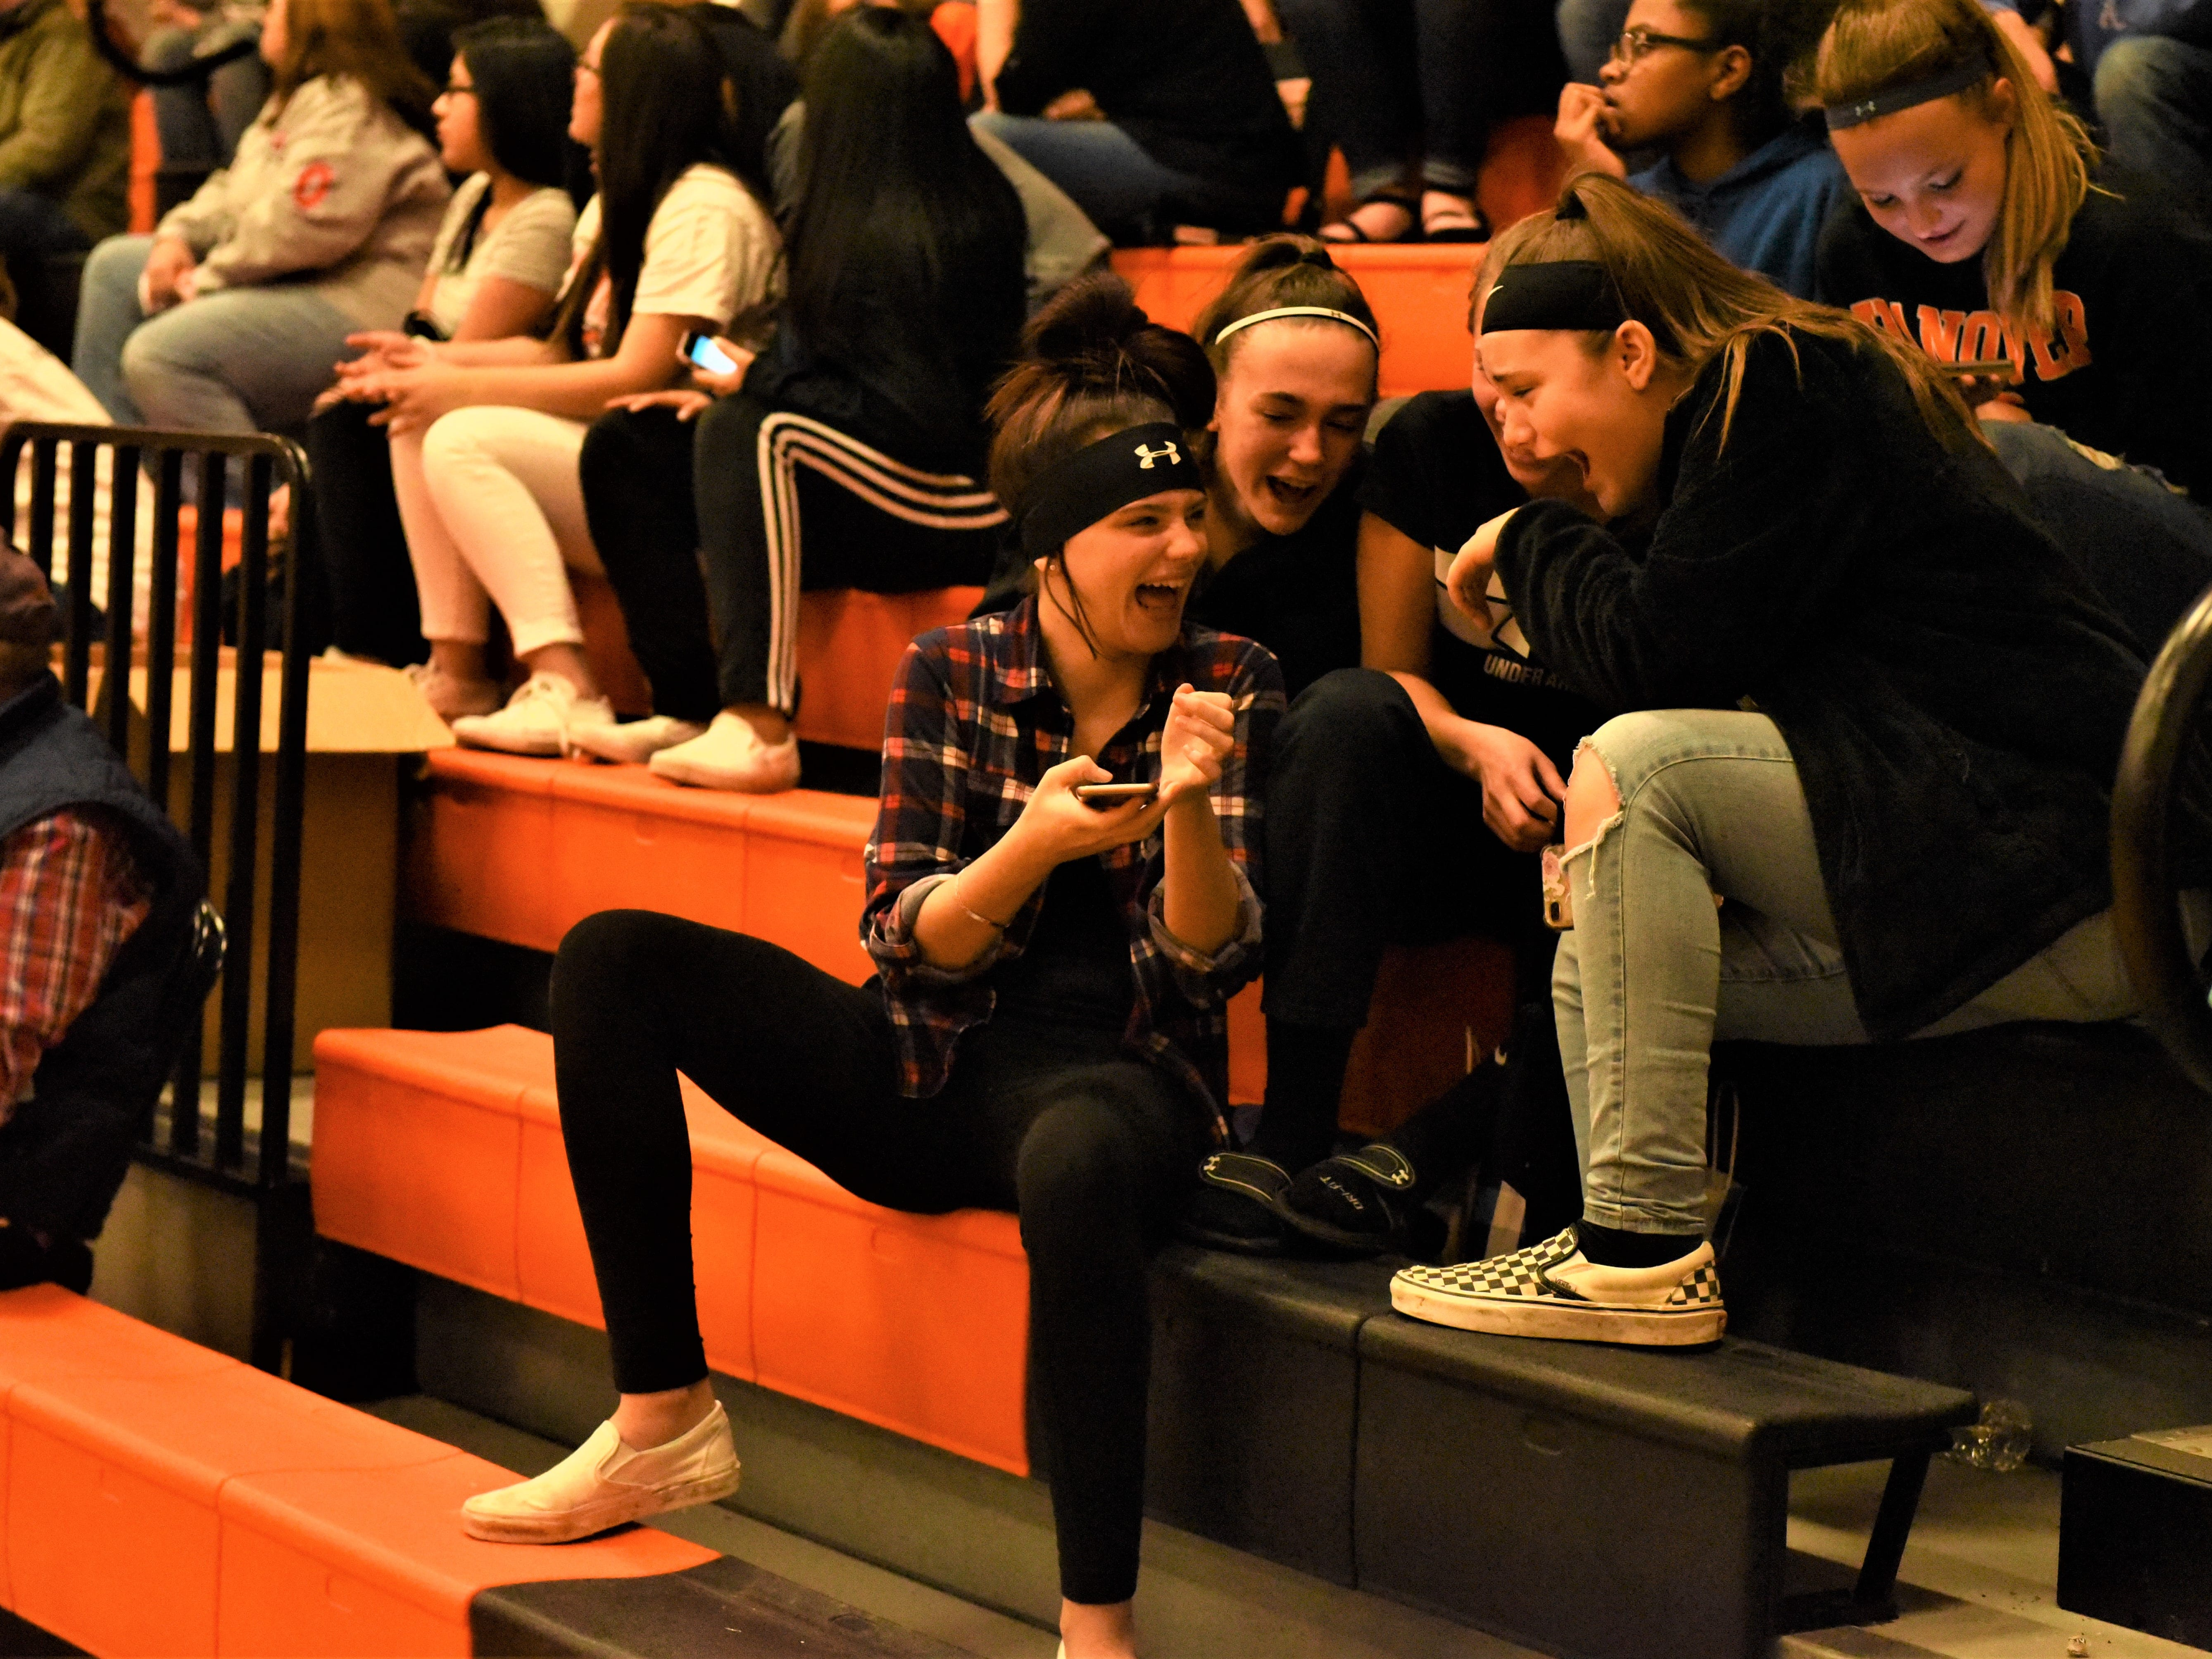 Girls sitting in the stands at the game. Fairfield High School lost at Hanover High School on Dec. 21, 57 to 43.